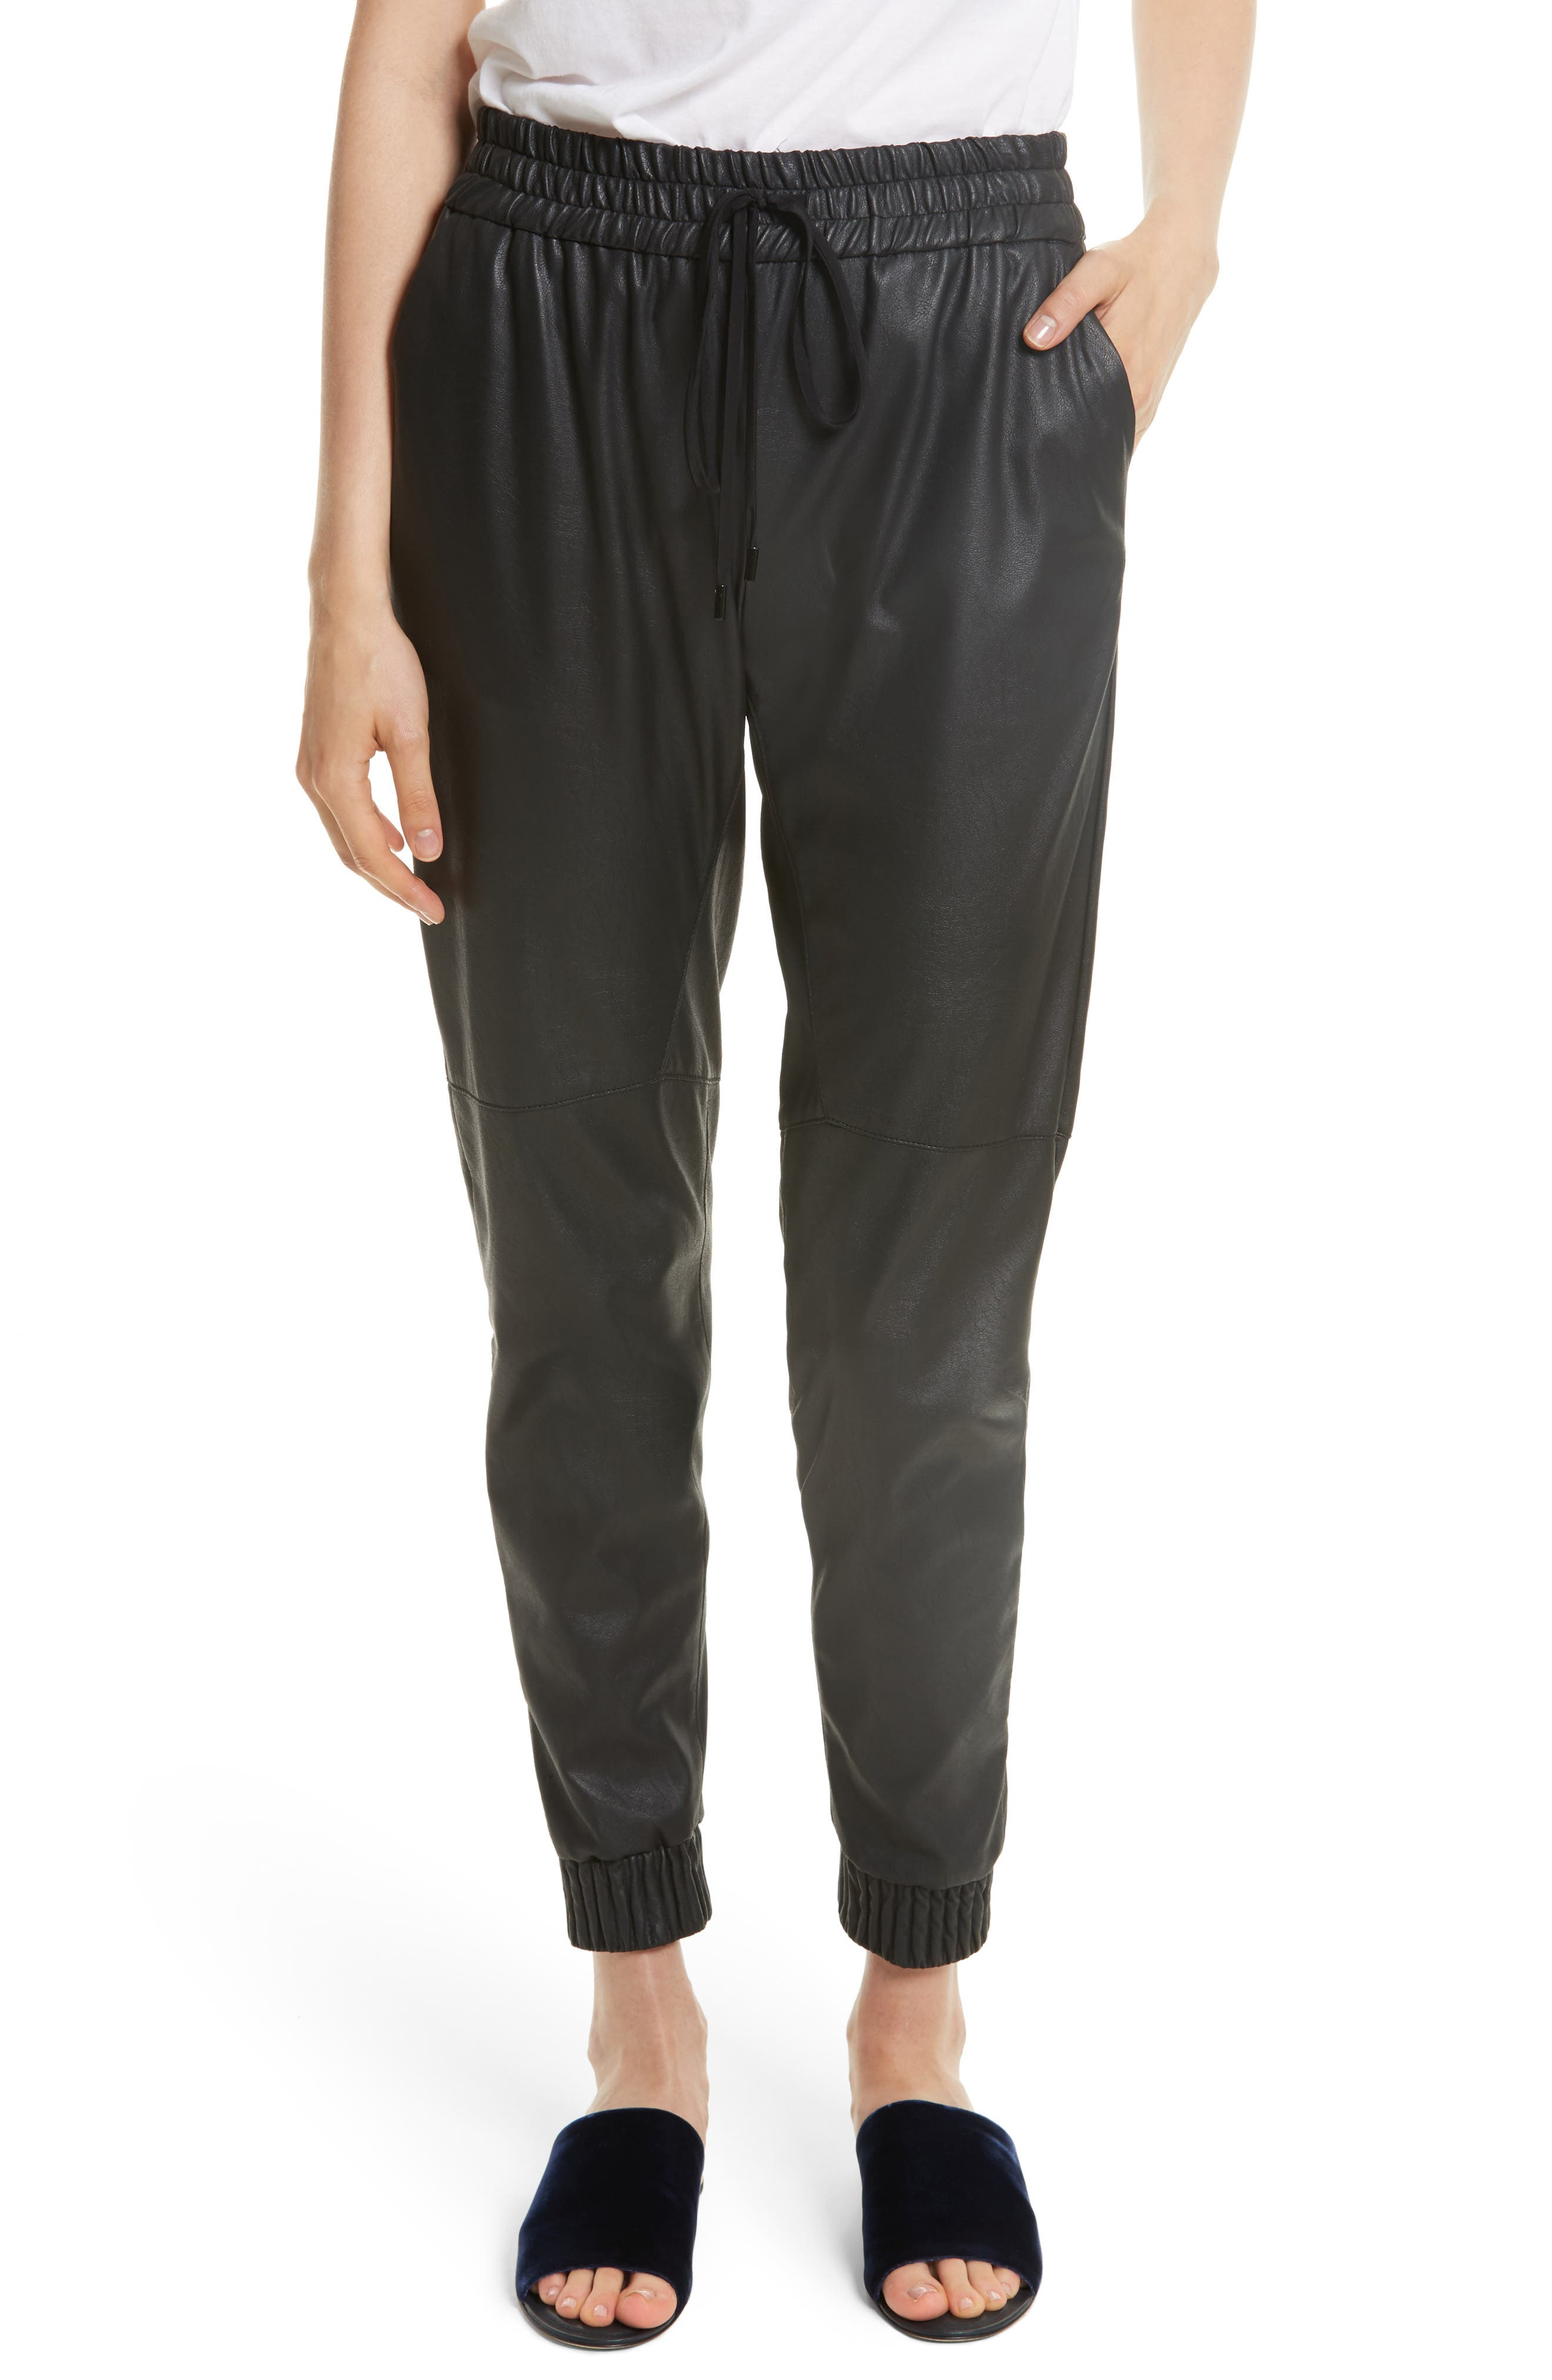 Alternate Image 1 Selected - Rebecca Taylor Faux Leather Track Pants